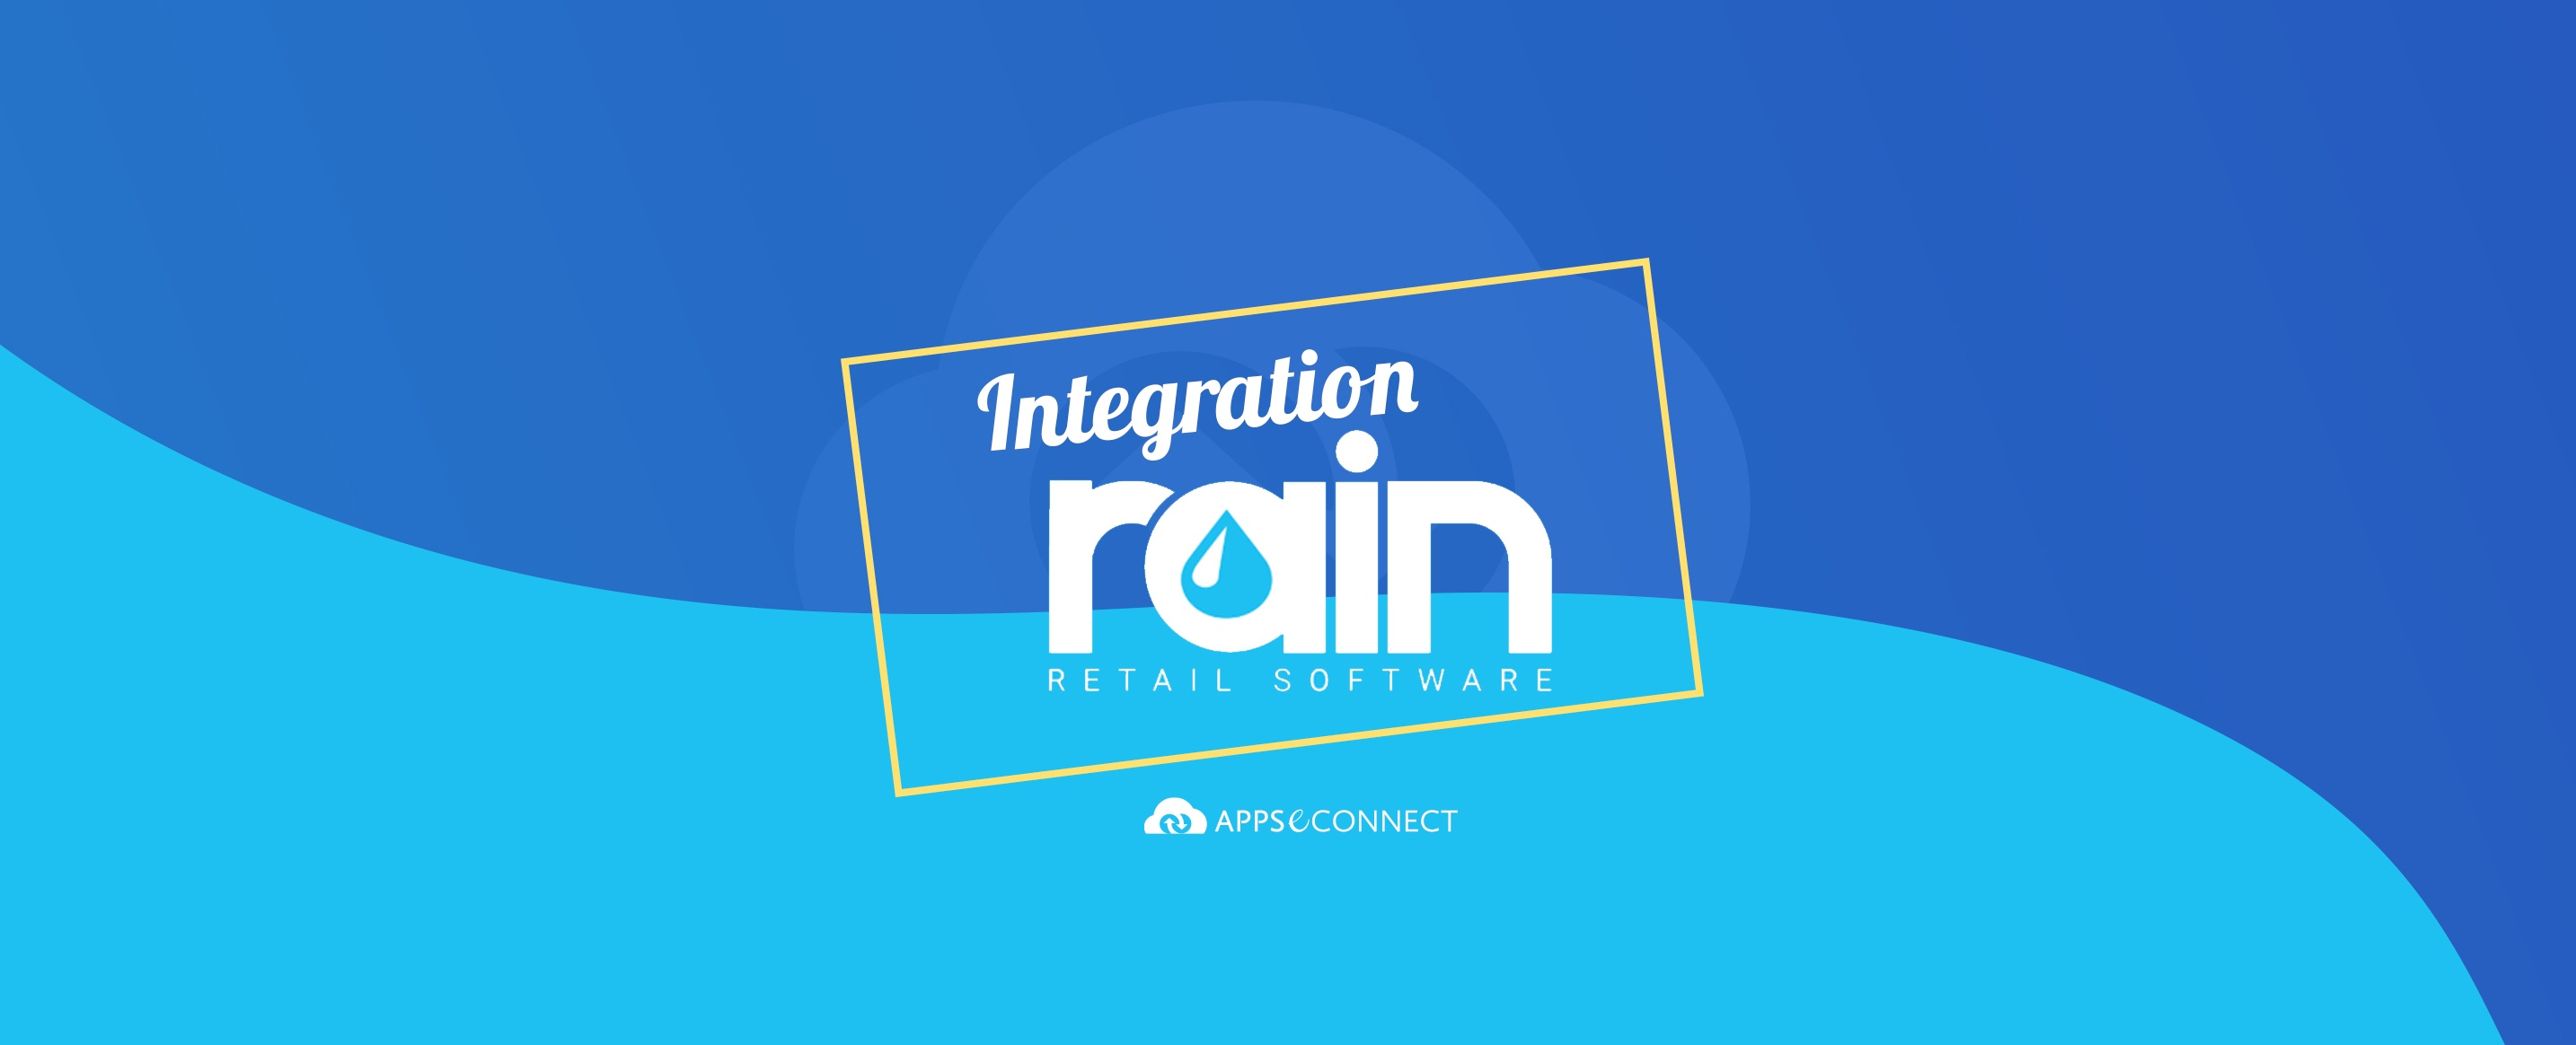 Rain-POS-Integration---All-You-Need-To-Know